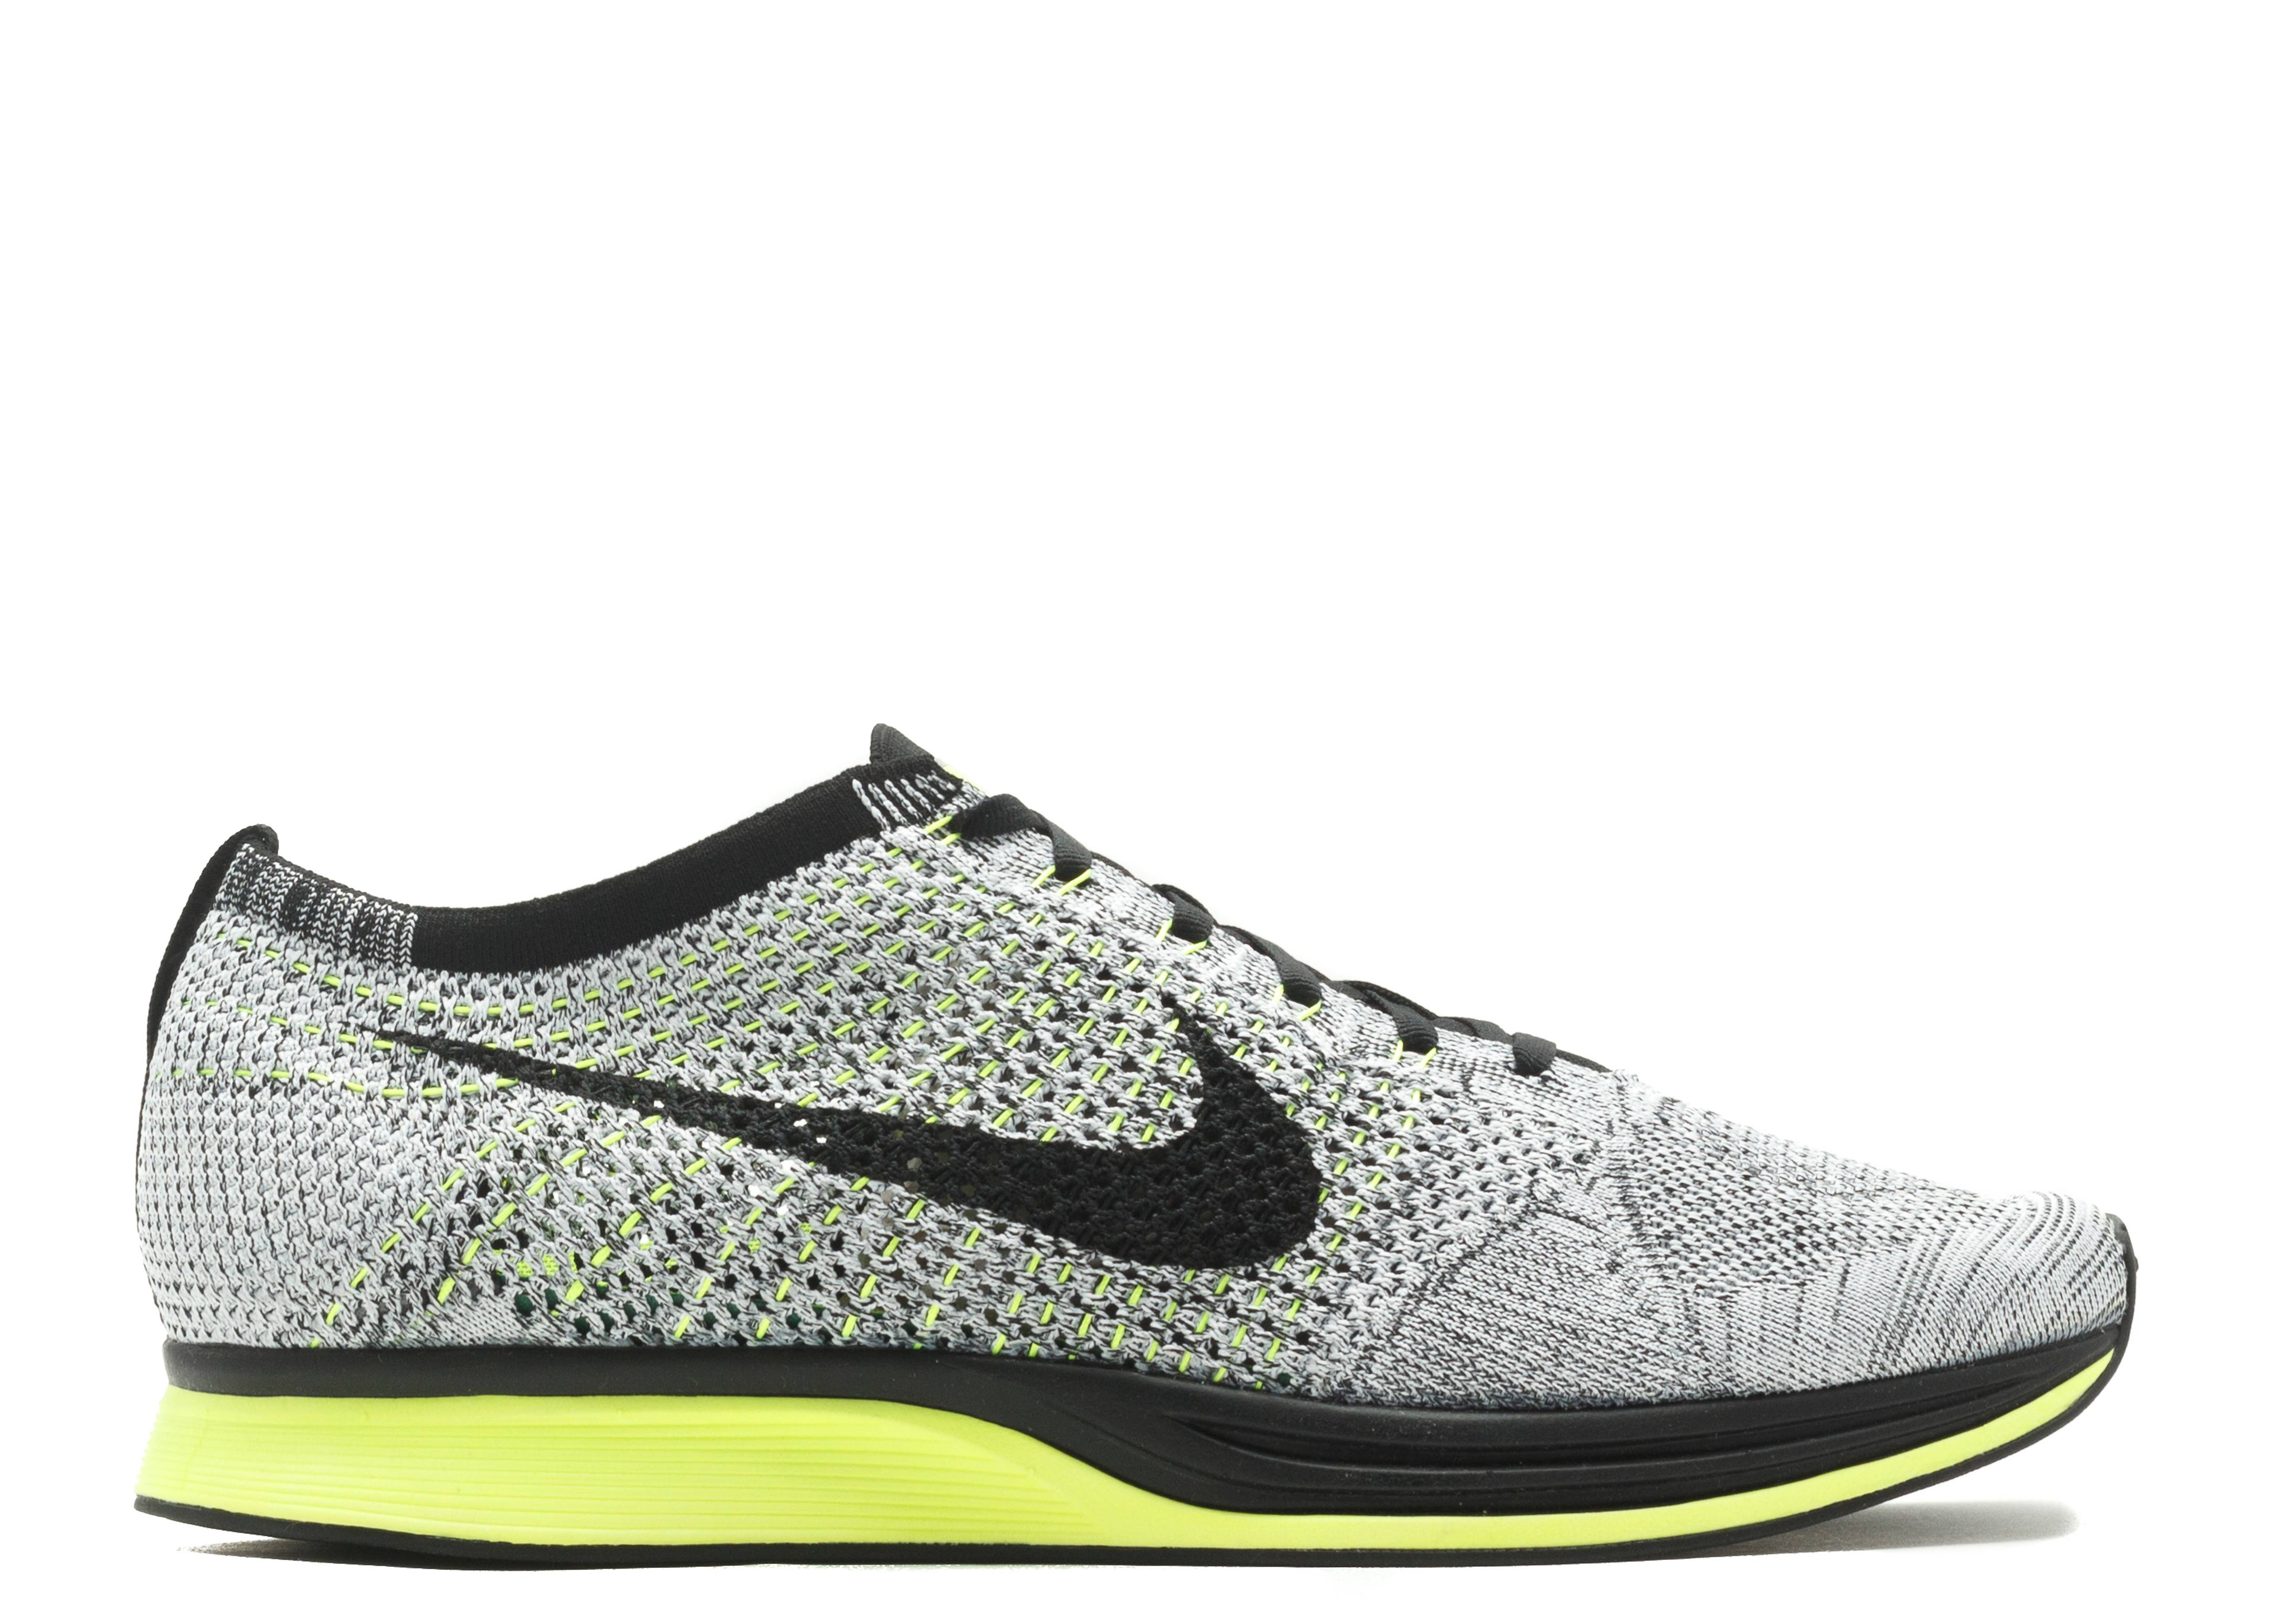 Nike Racer Flyknit Compagnies Malaisie Oreo Volts réduction Finishline WlZMYYo